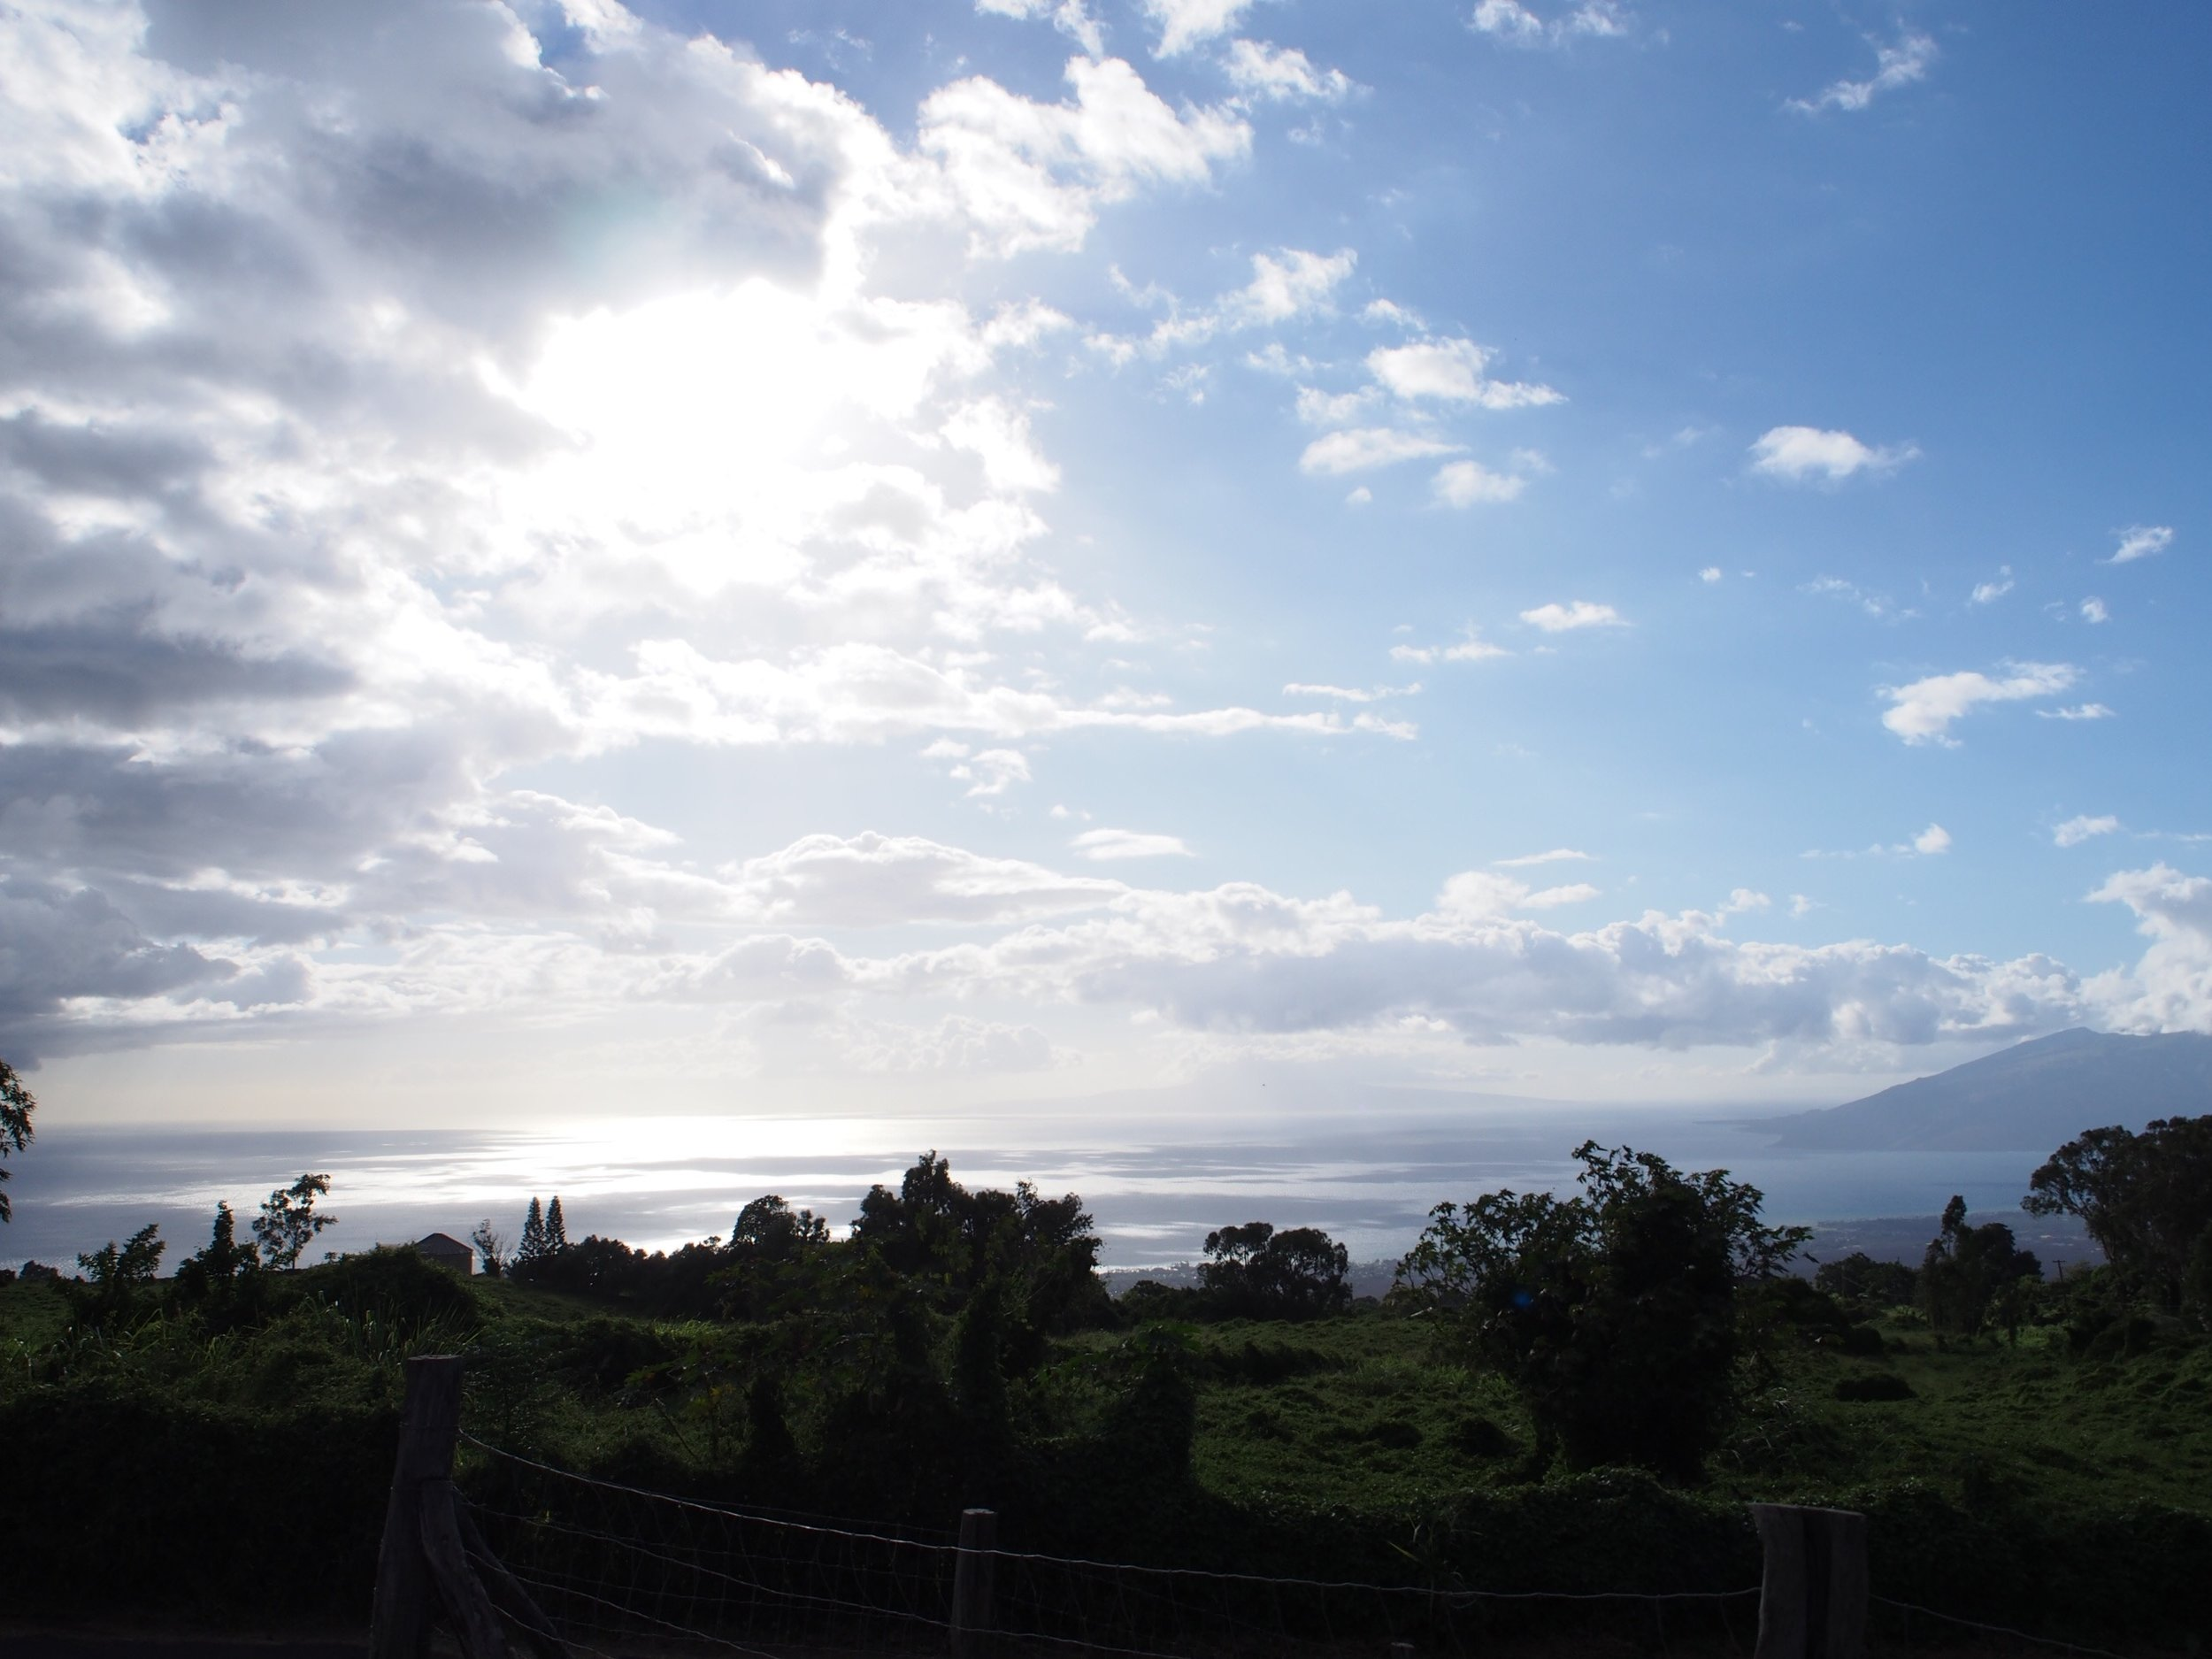 View of Southern Maui